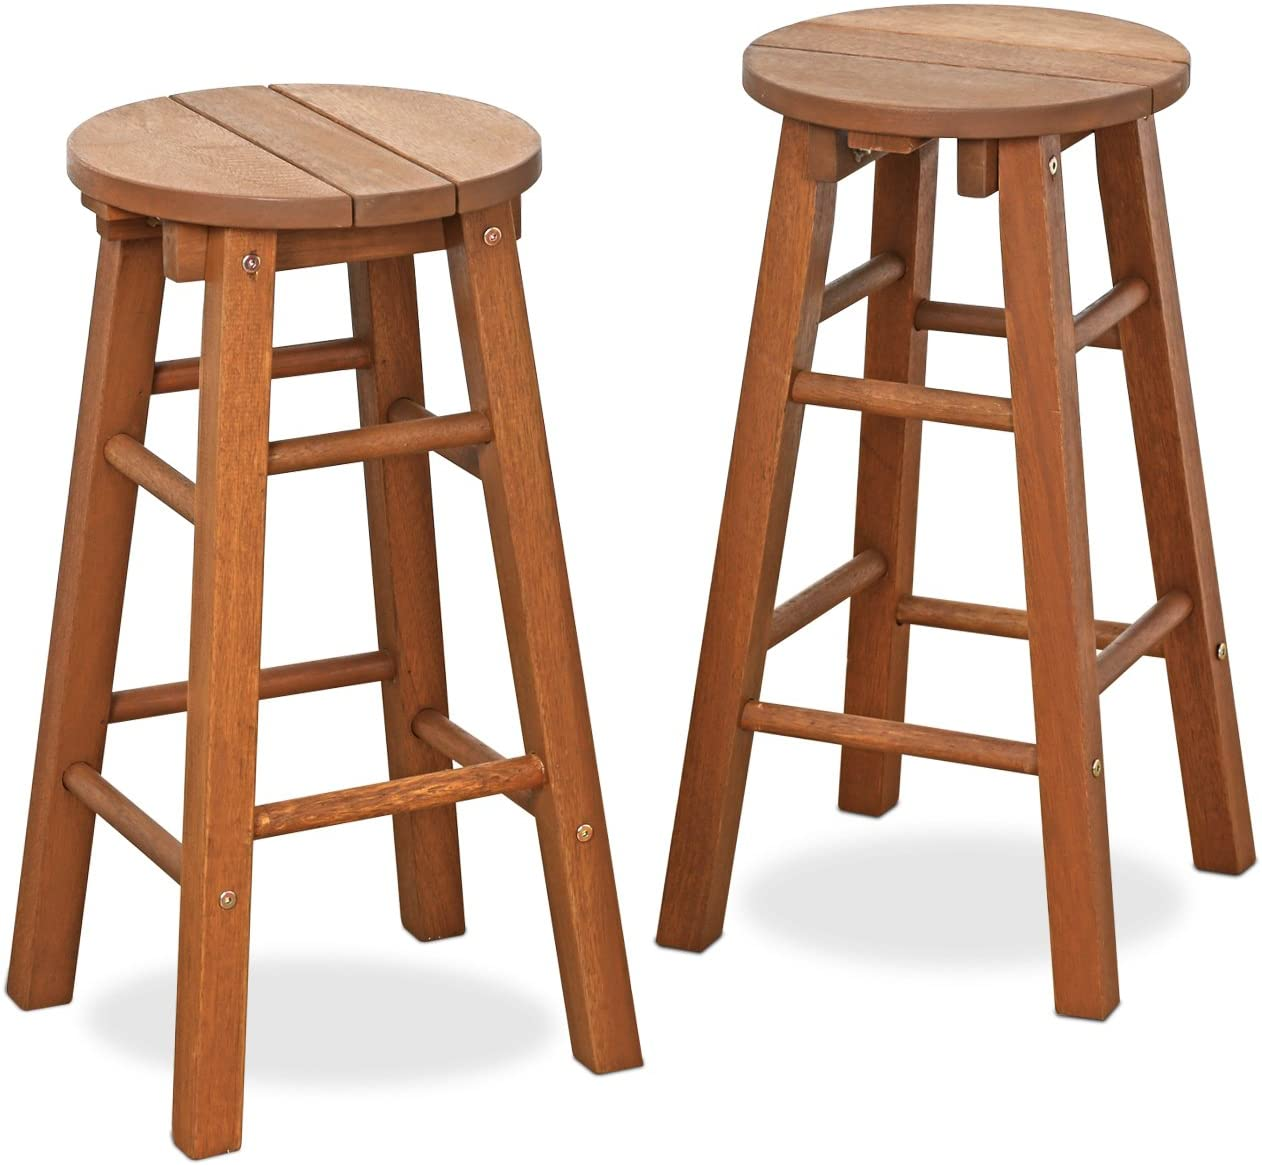 Furinno FG17629 Tioman Outdoor Hardwood Patio Furniture Promo Arch Bar Stool (Set of 2), Natural